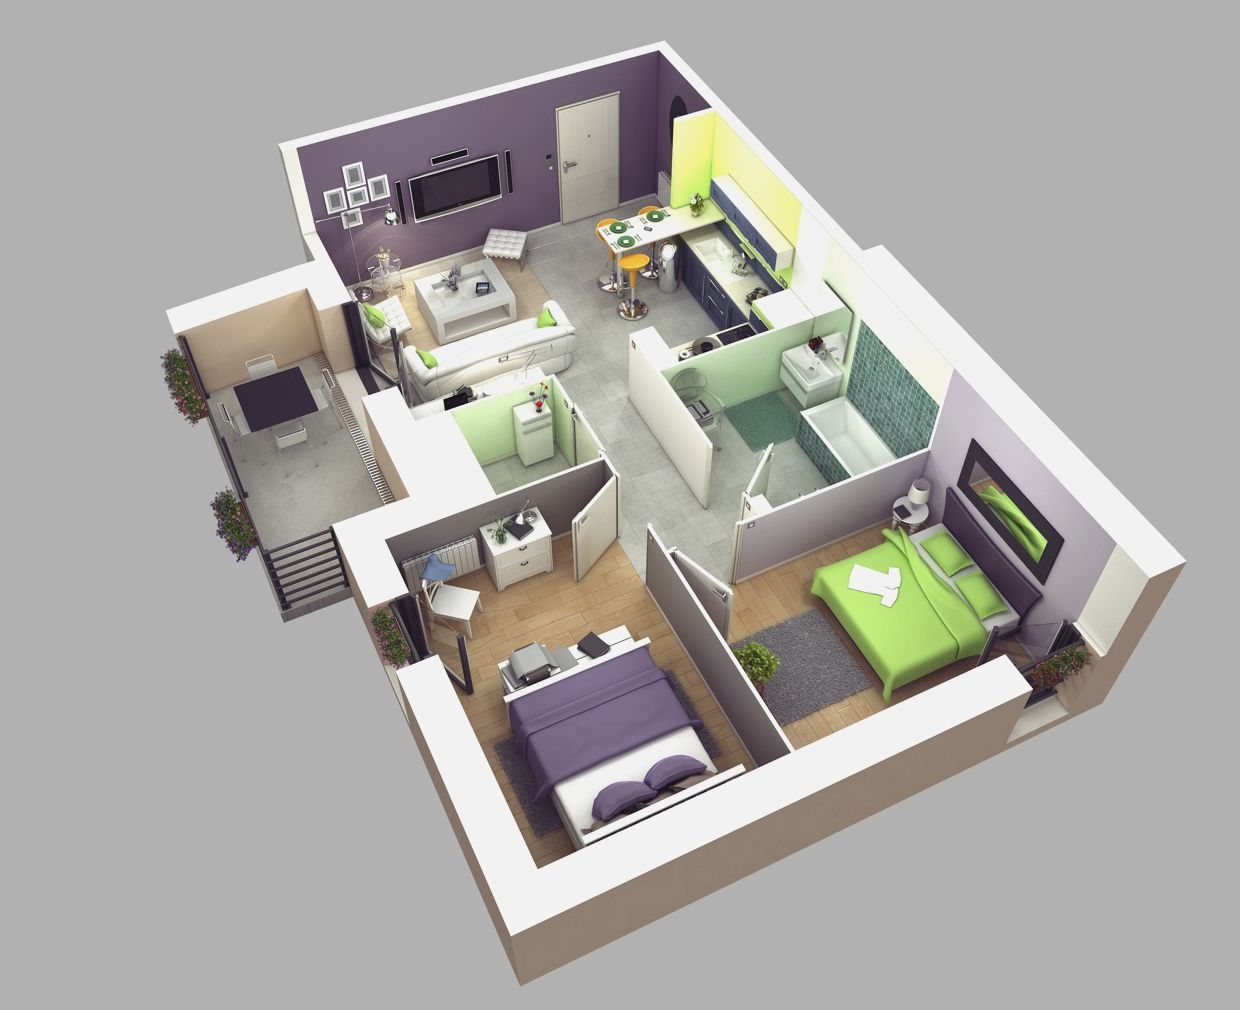 . 3 bedroom house designs 3d   Buscar con Google   House plans